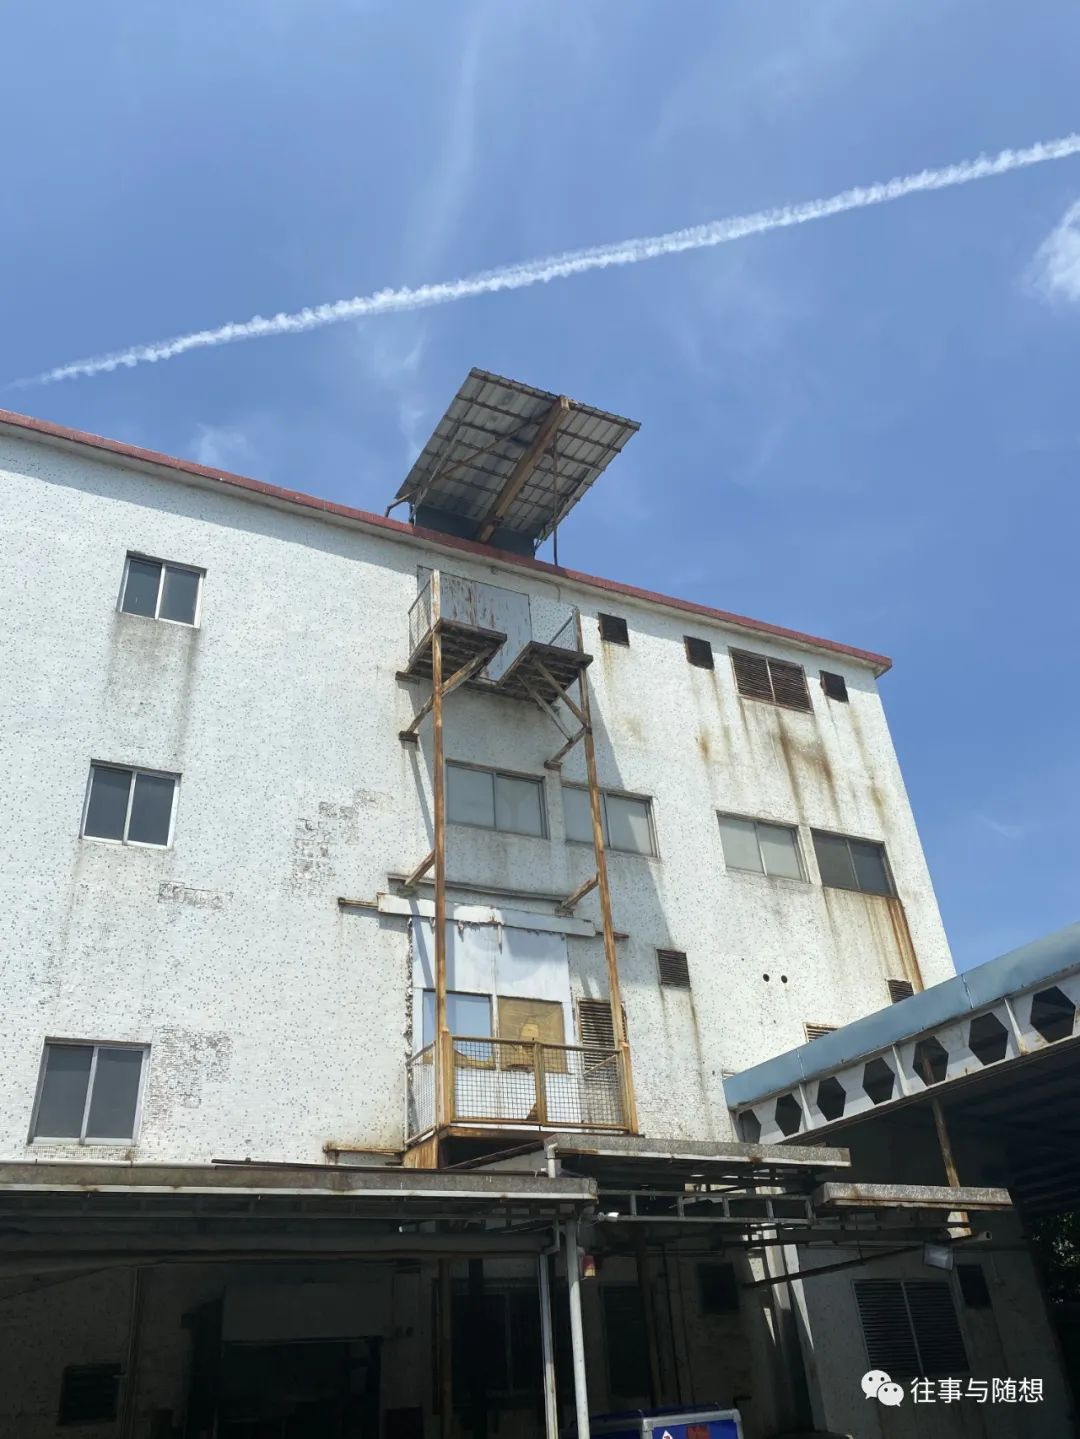 The stained white exterior of a four-story factory building, with a blue sky and white contrail overhead